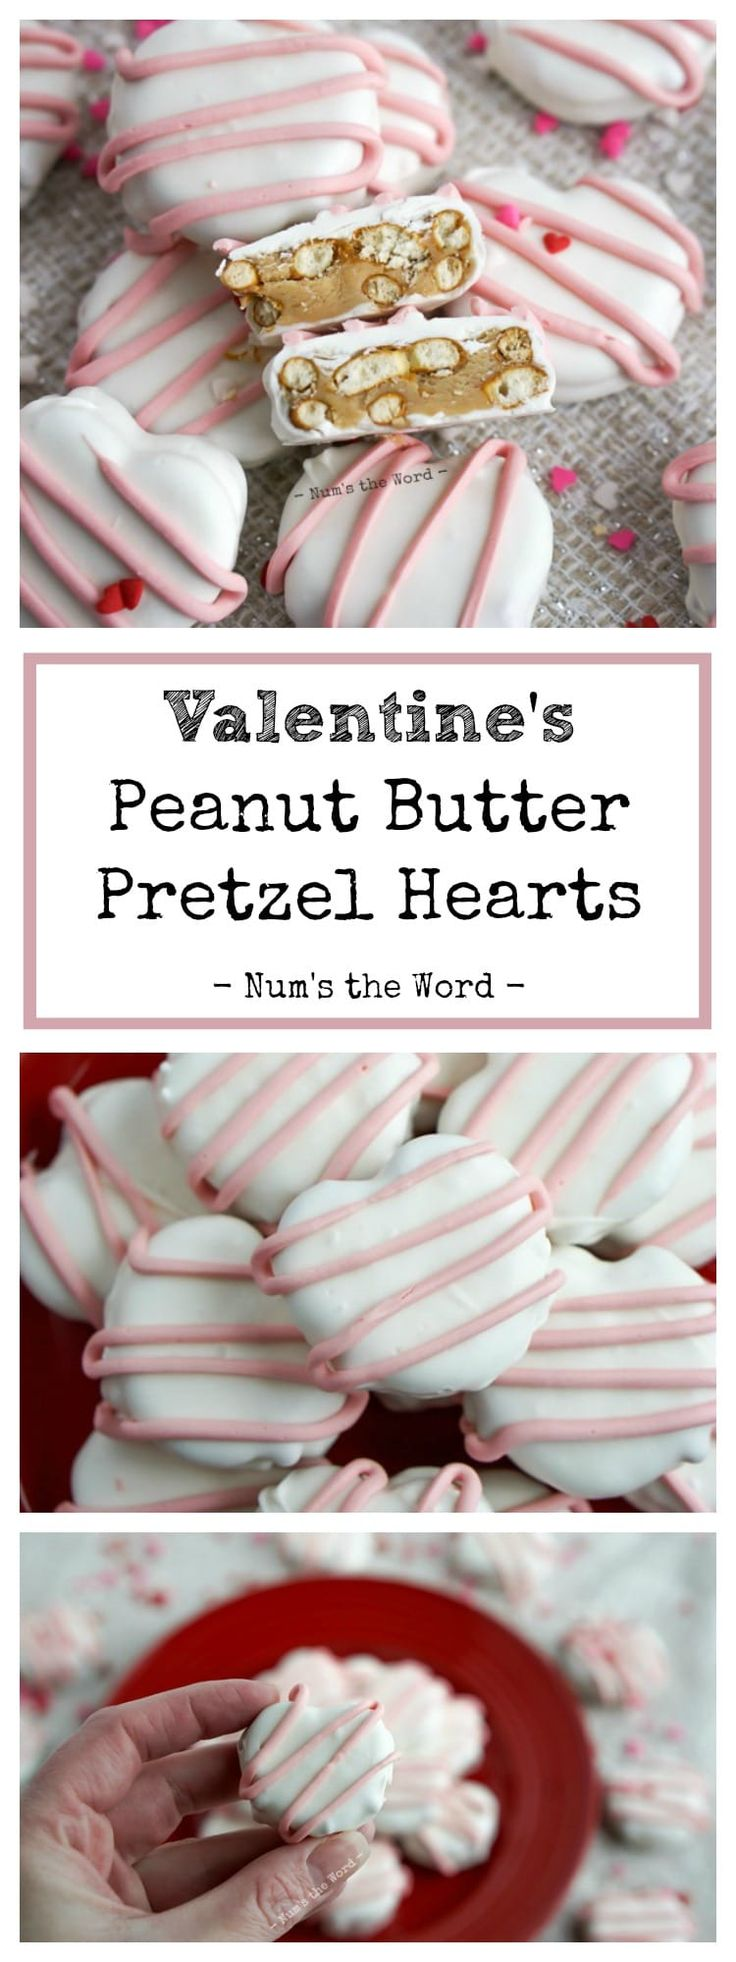 These Valentine's Peanut Butter Pretzel Hearts are the perfect treat for any Peanut Butter Cup lover! Two pretzels with a peanut butter cup mixture between them and dipped in chocolate make for a very tasty treat anyone would be lucky enough to get.